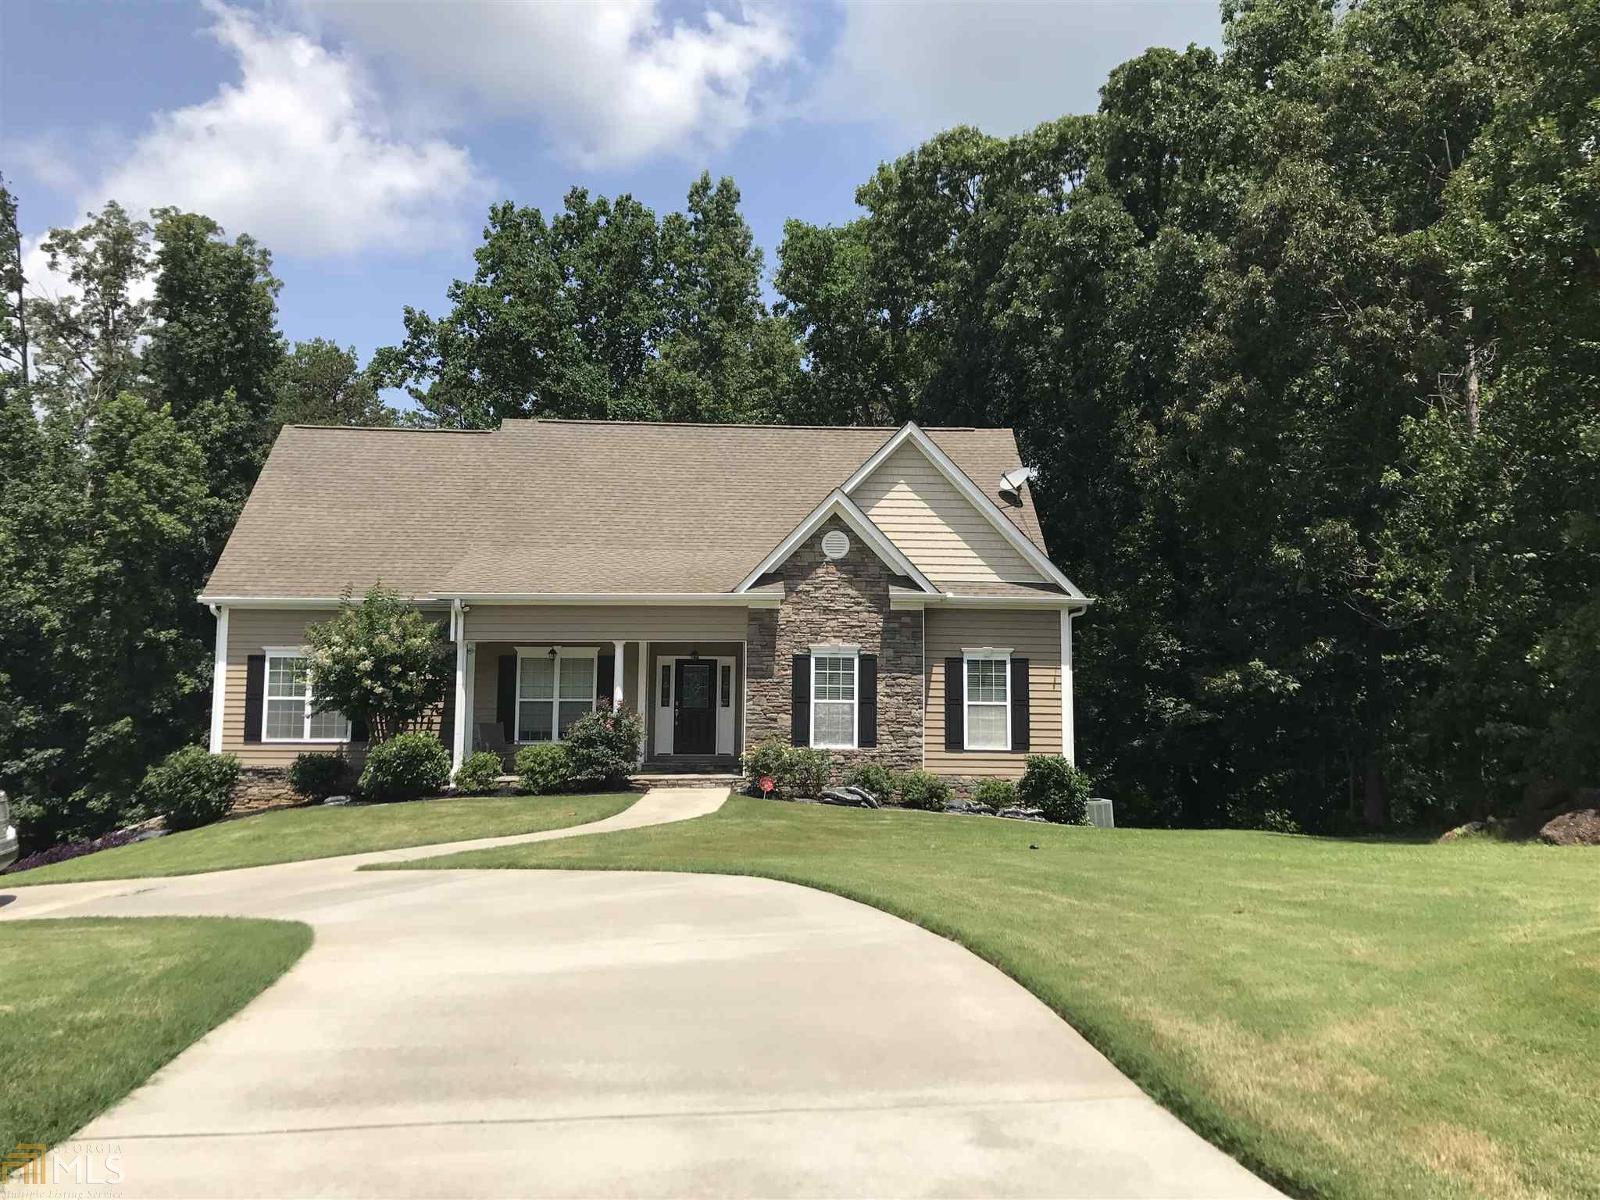 New Homes For Sale In Coweta County